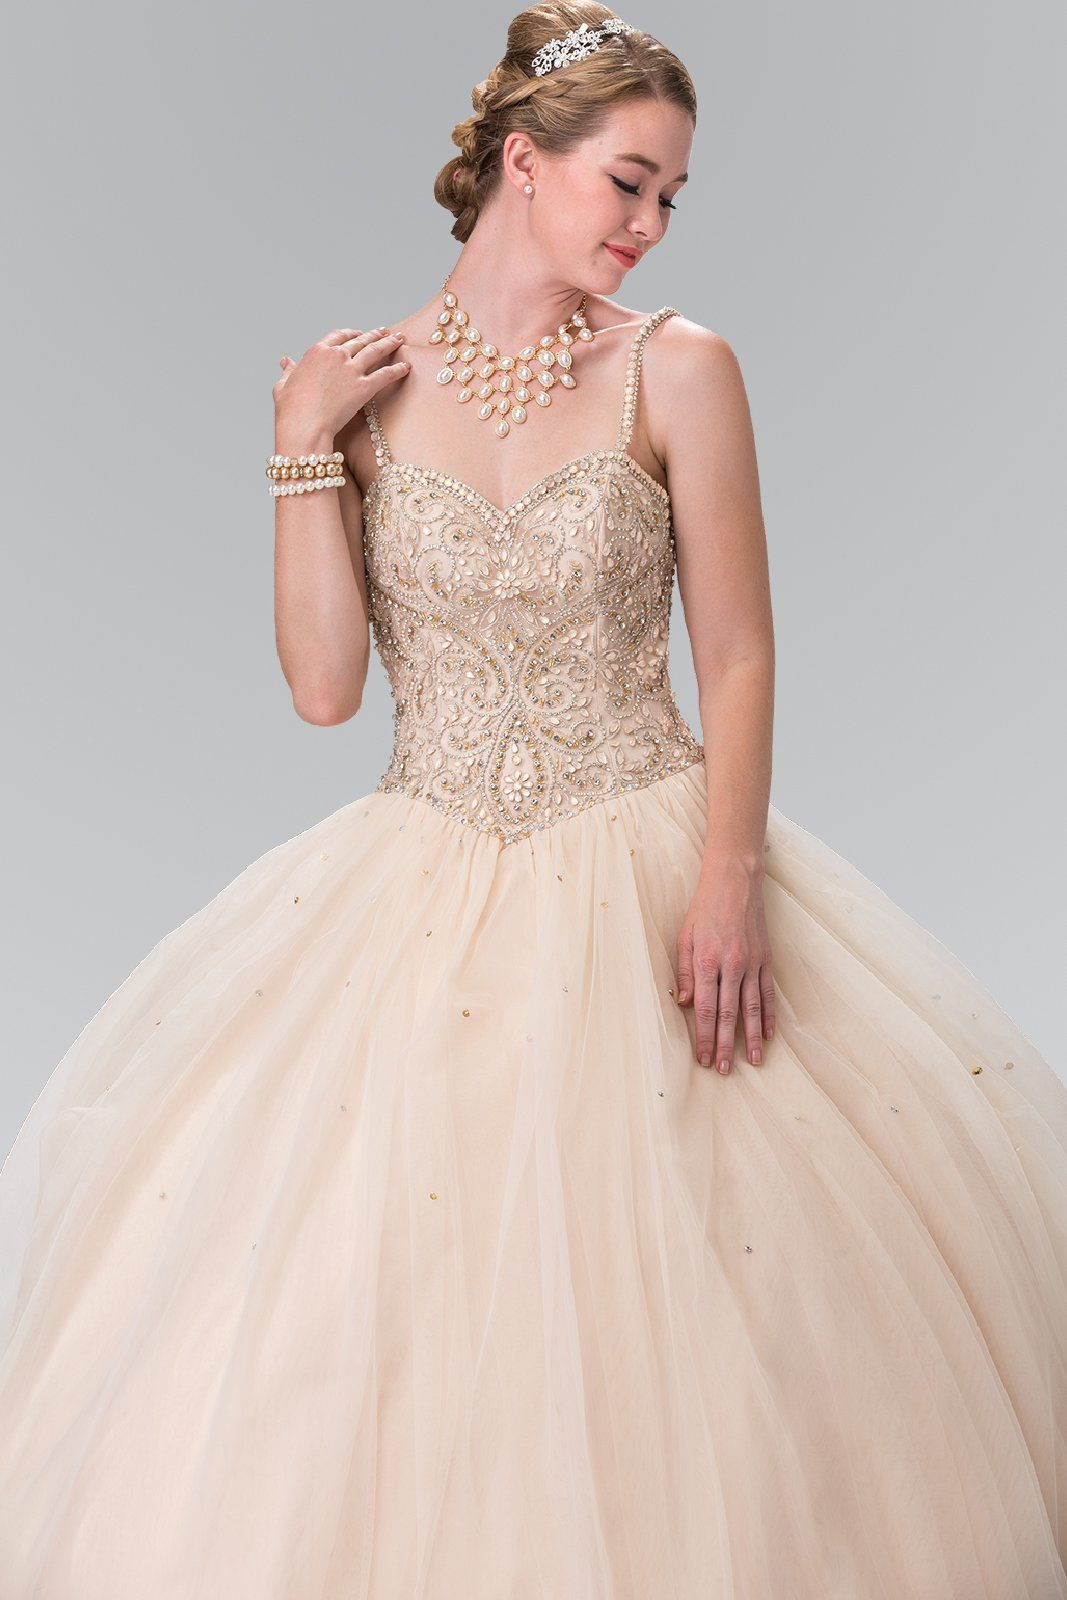 Sparkly quinceanera dress with puffy skirt gls 2350 – Simply Fab Dress